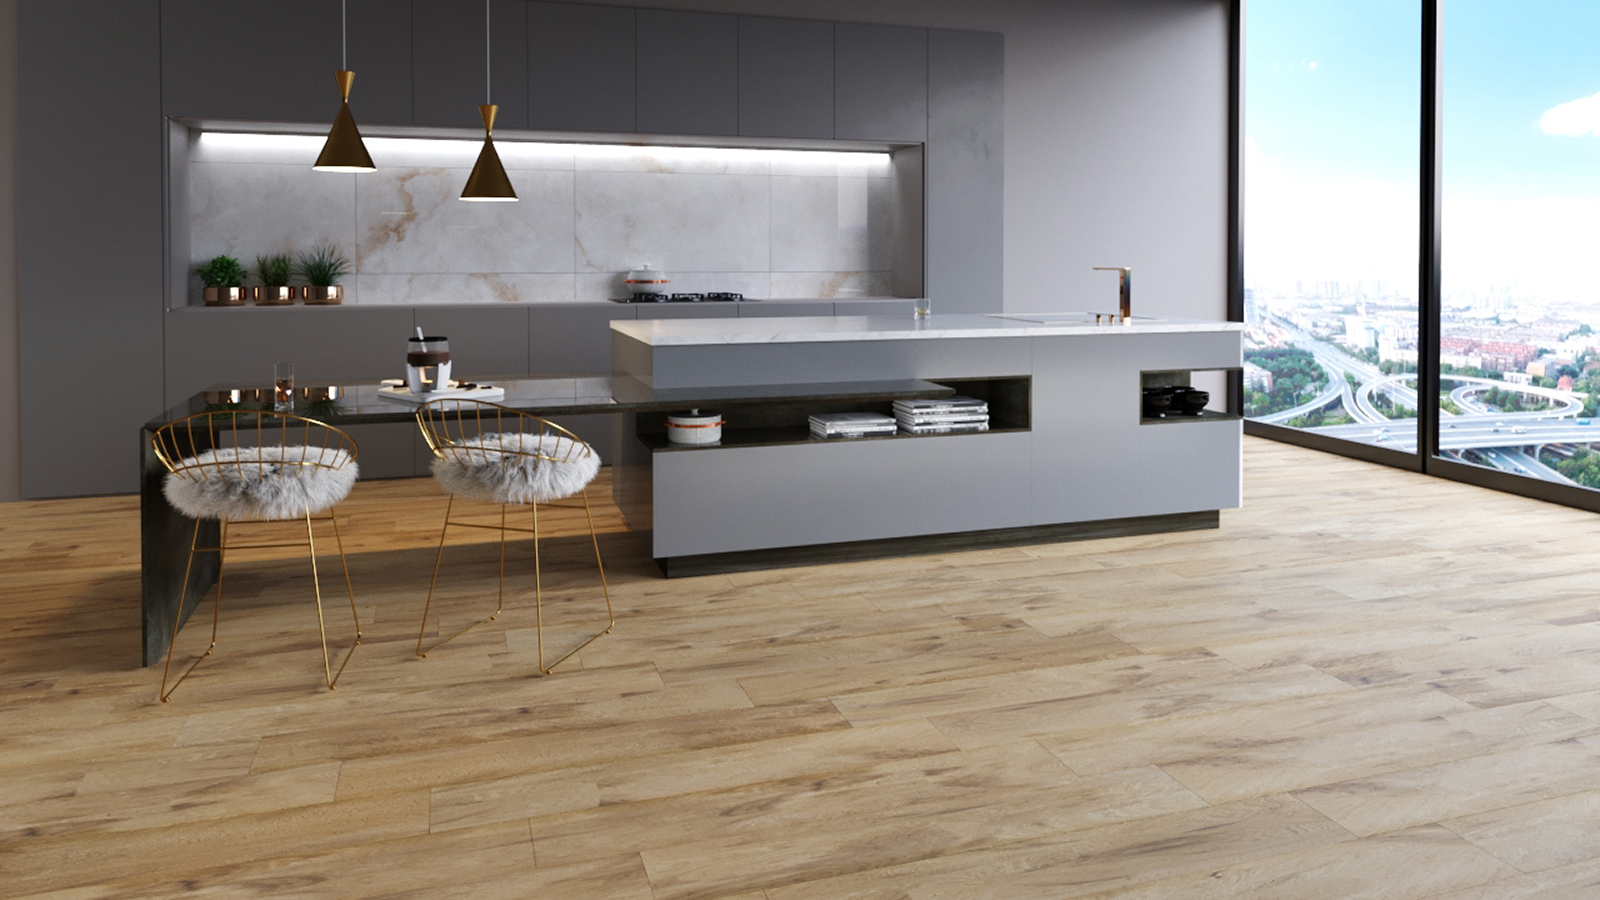 How to create a natural look with wood effect tiles?